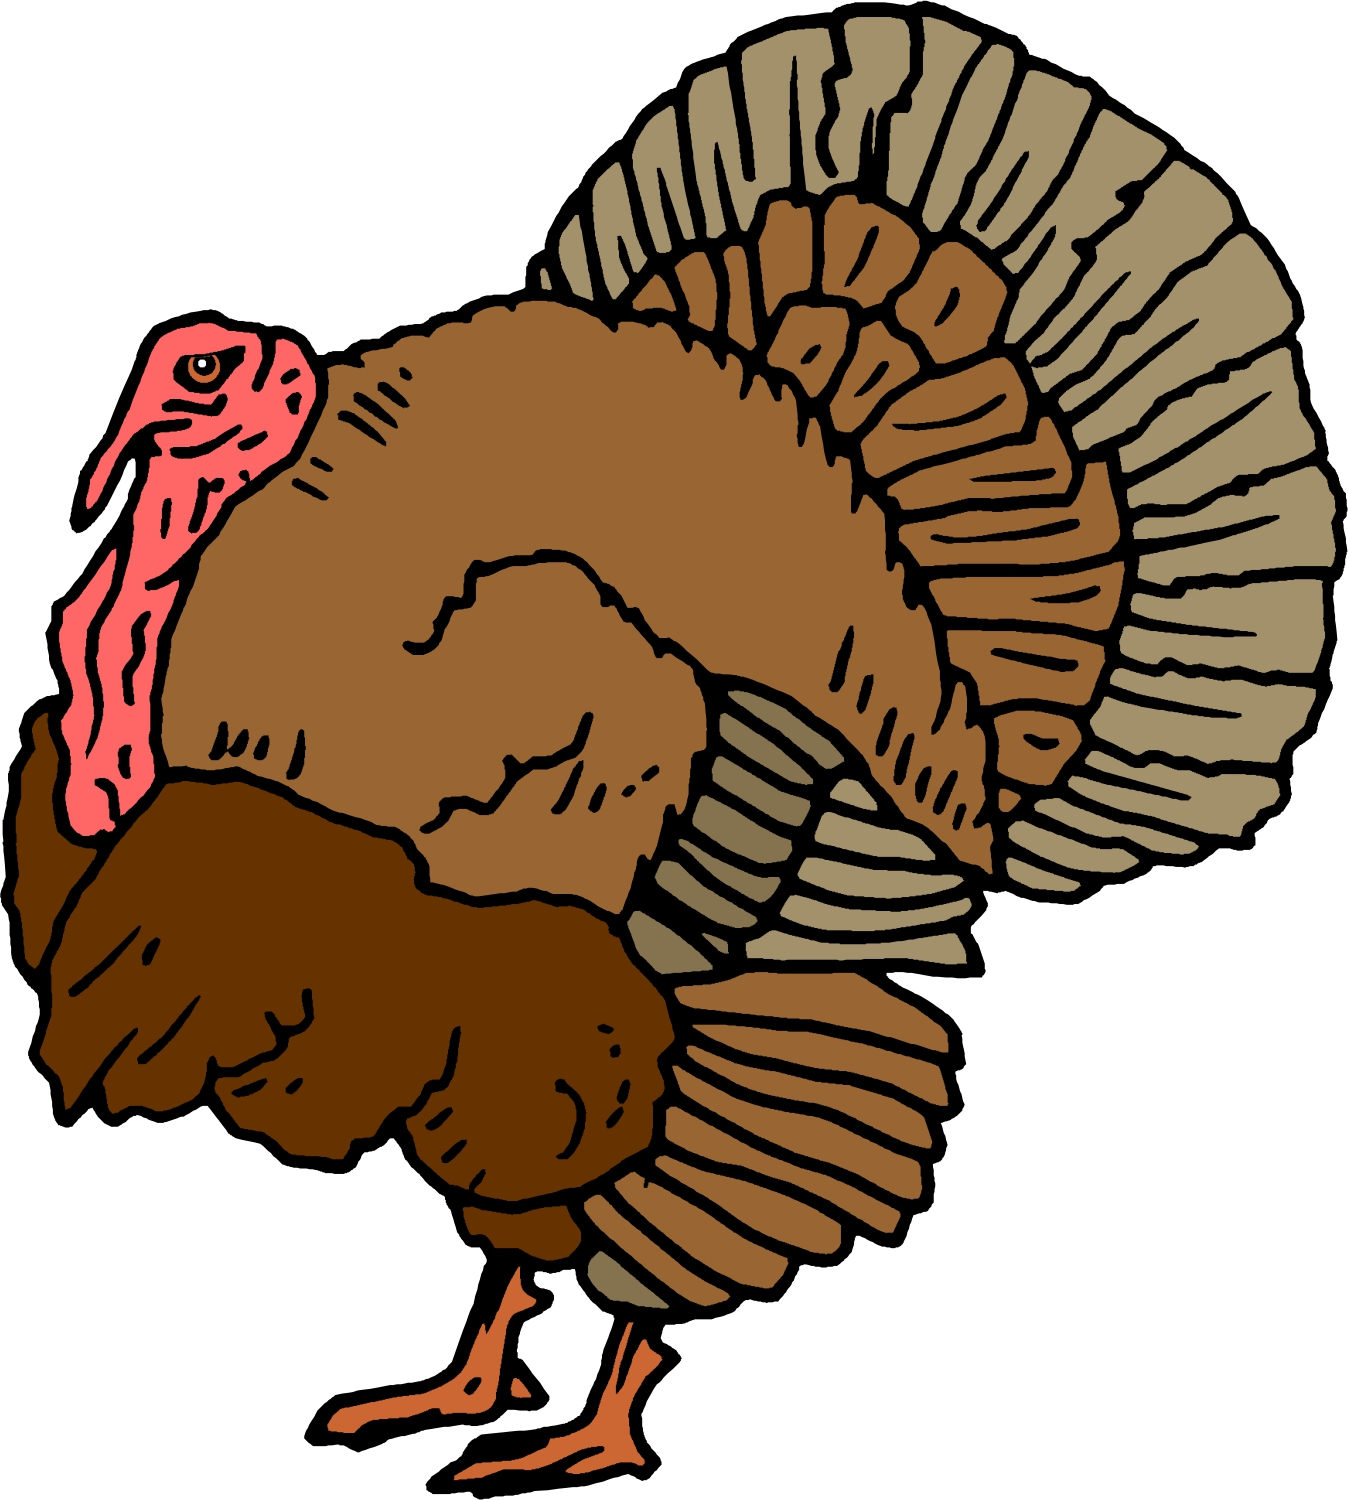 Moving turkey cliparts free download clip art jpg